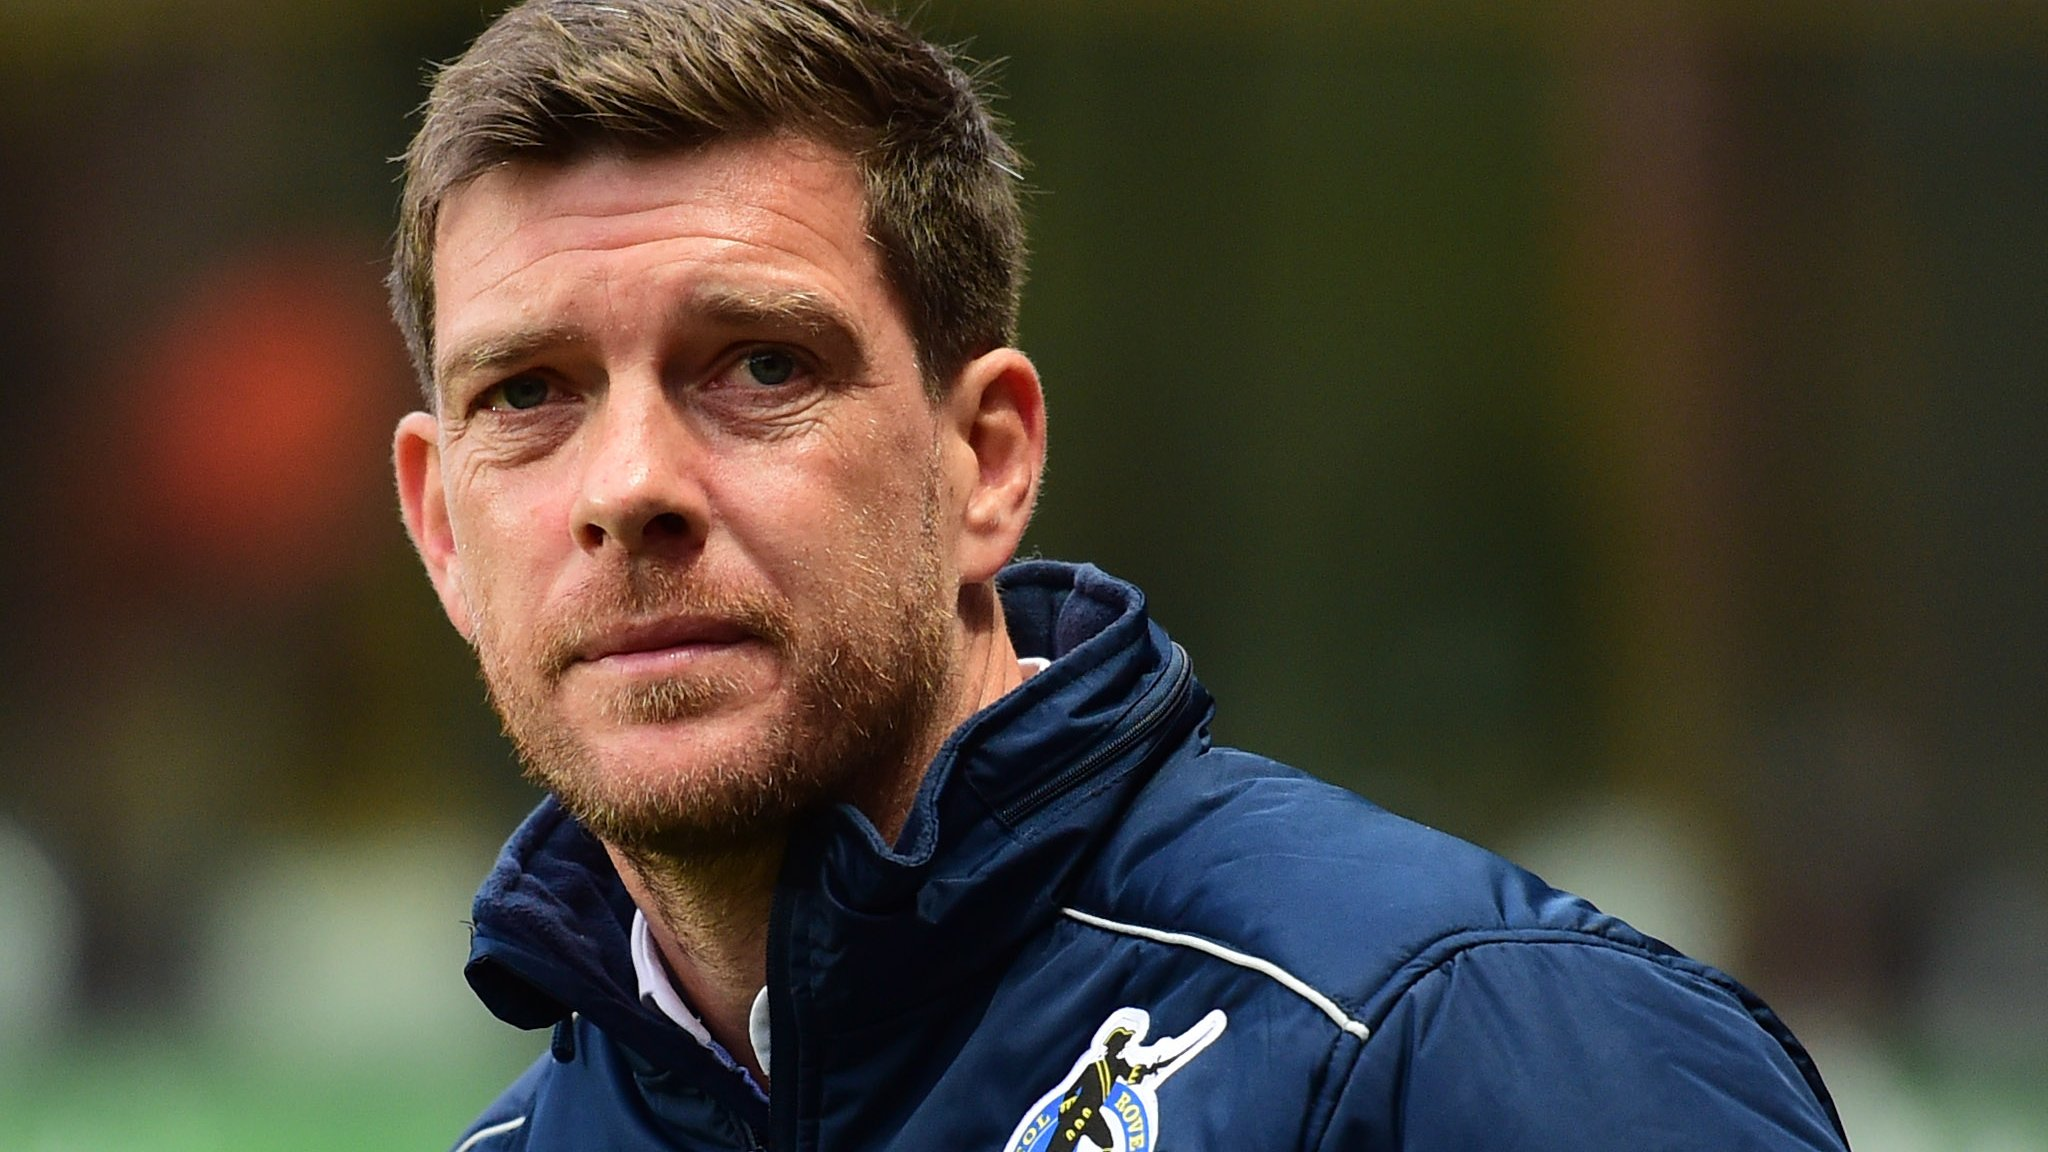 Bristol Rovers: Darrell Clarke 'most successful manager' in club's history